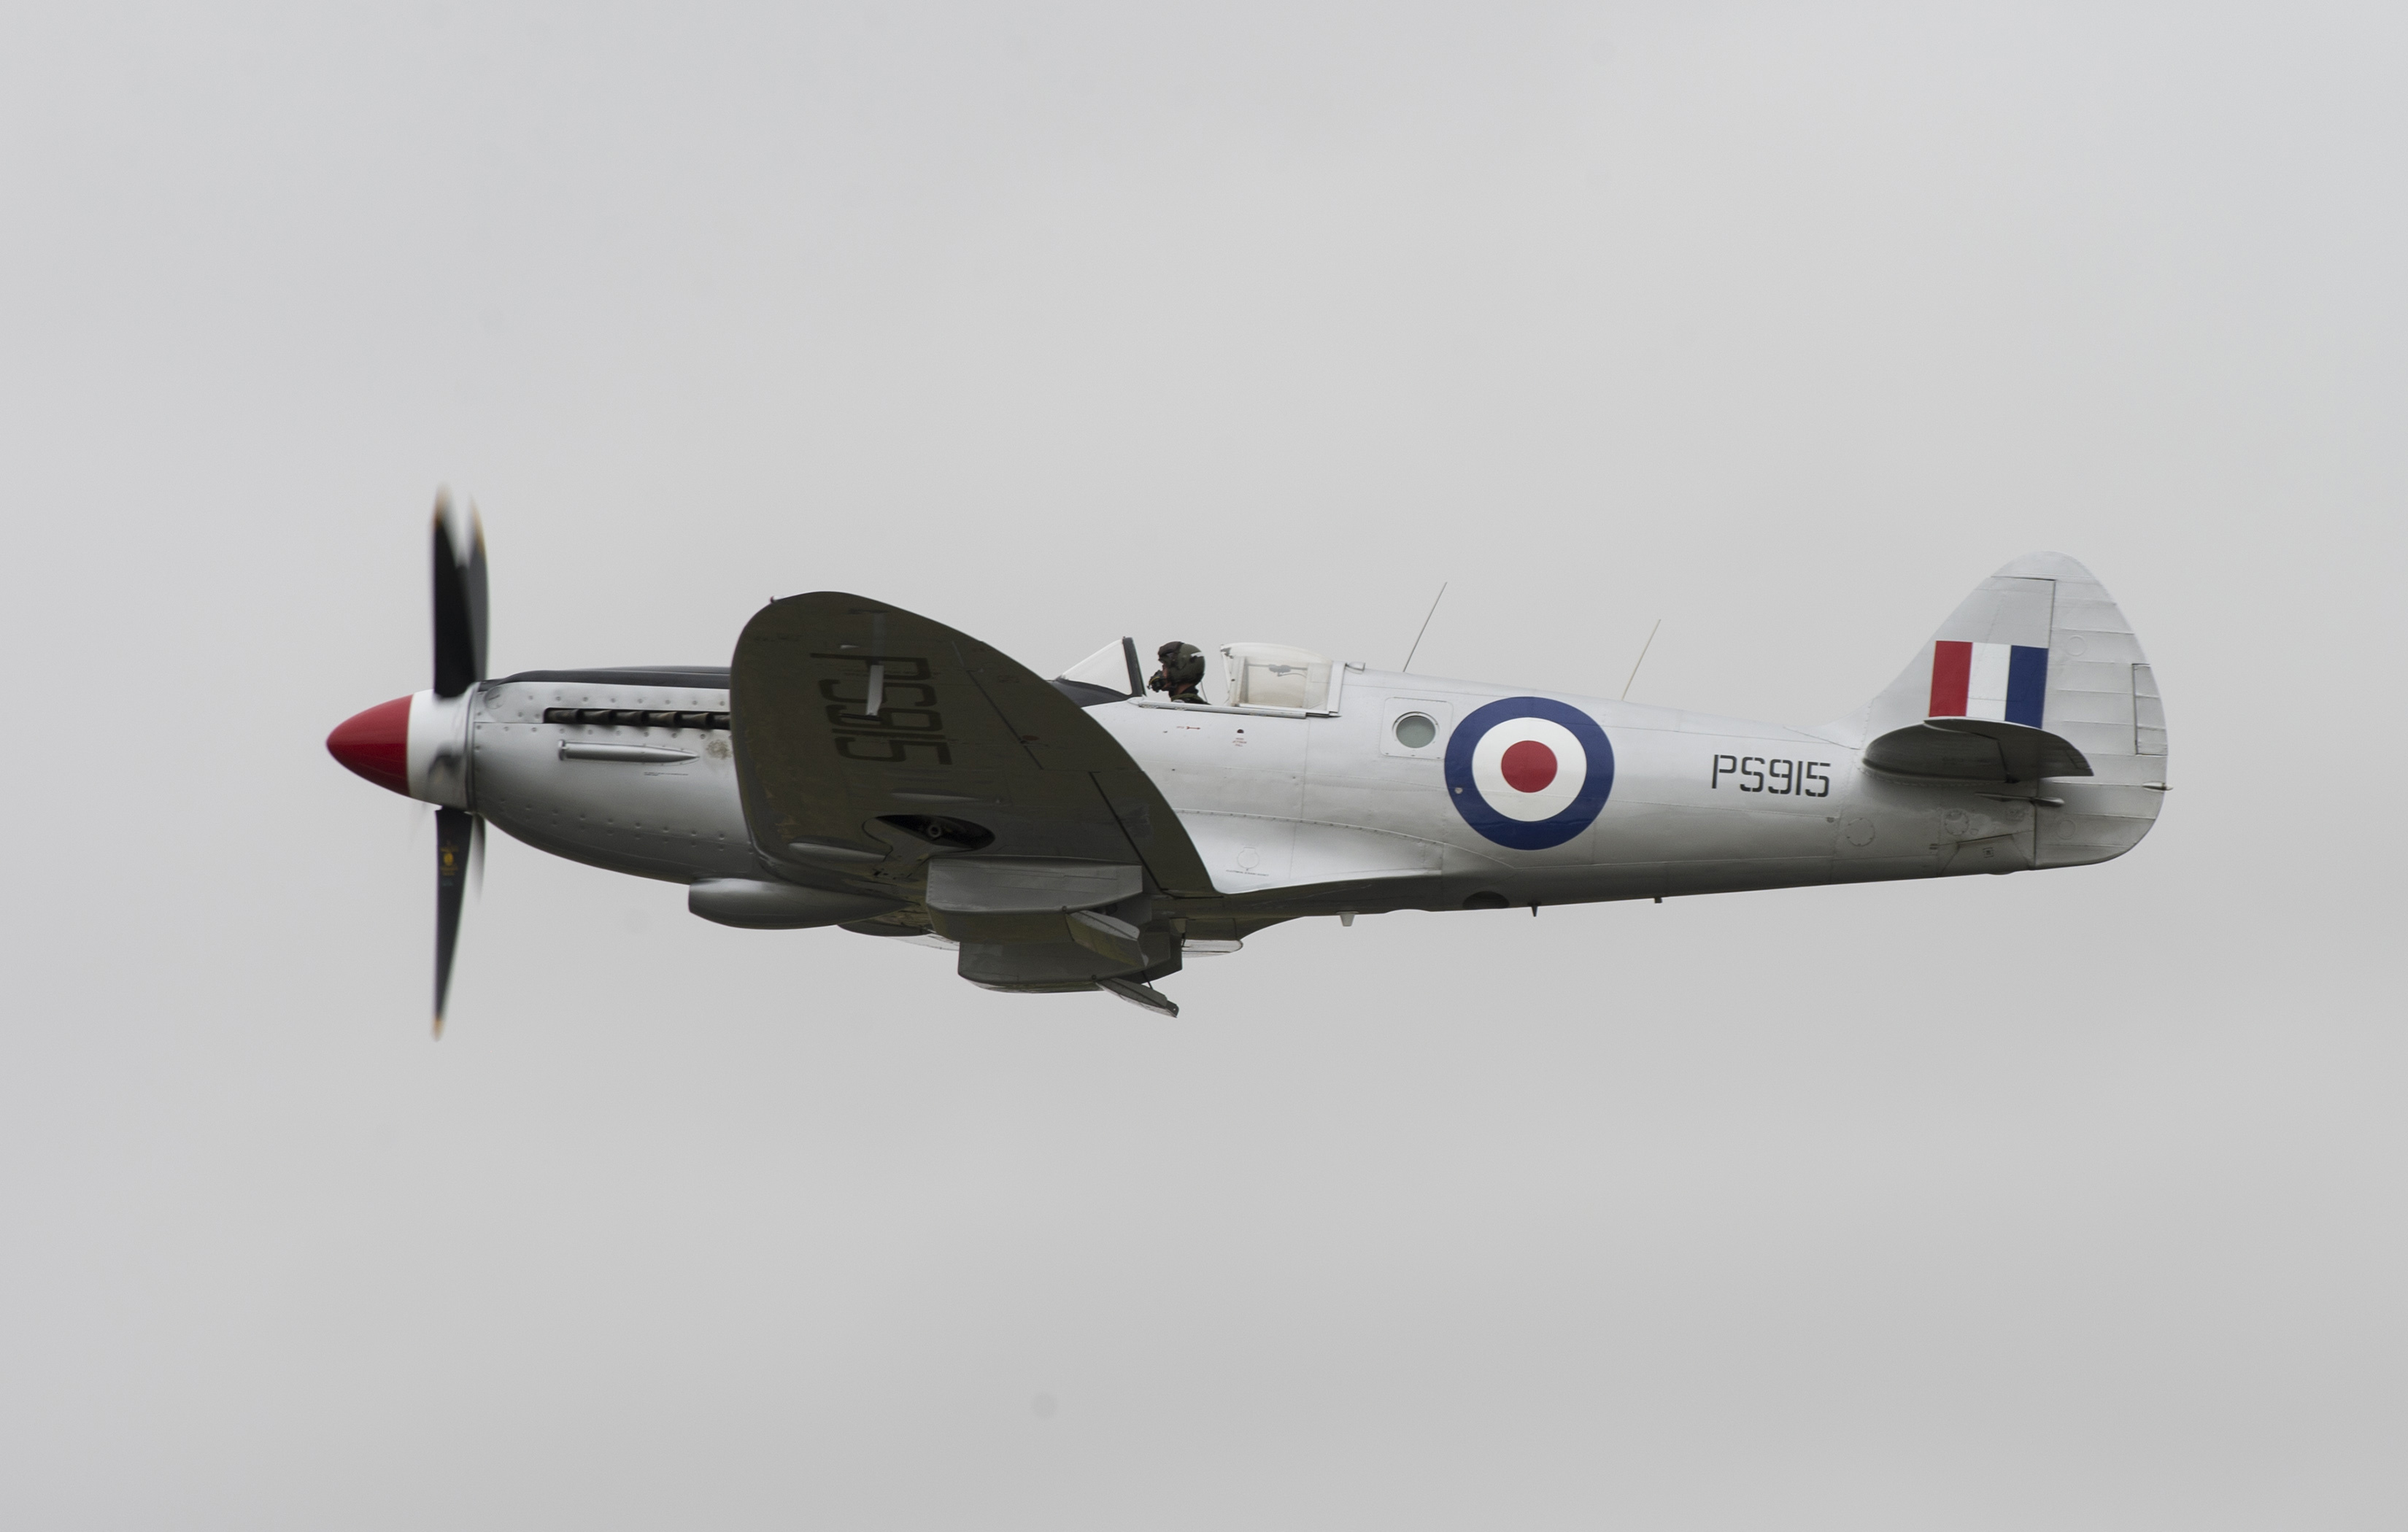 FAIRFORD, United Kingdom – A VS Spitfire aircraft flies past spectators during the 2017 Royal International Air Tattoo (RIAT) located at RAF Fairford, United Kingdom, on July 15, 2017. This year commemorates the U.S. Air Force's 70th Anniversary which was highlighted during RIAT by displaying its lineage and advancements in military aircraft. (U.S. Air Force Photo by Tech. Sgt. Brian Kimball)